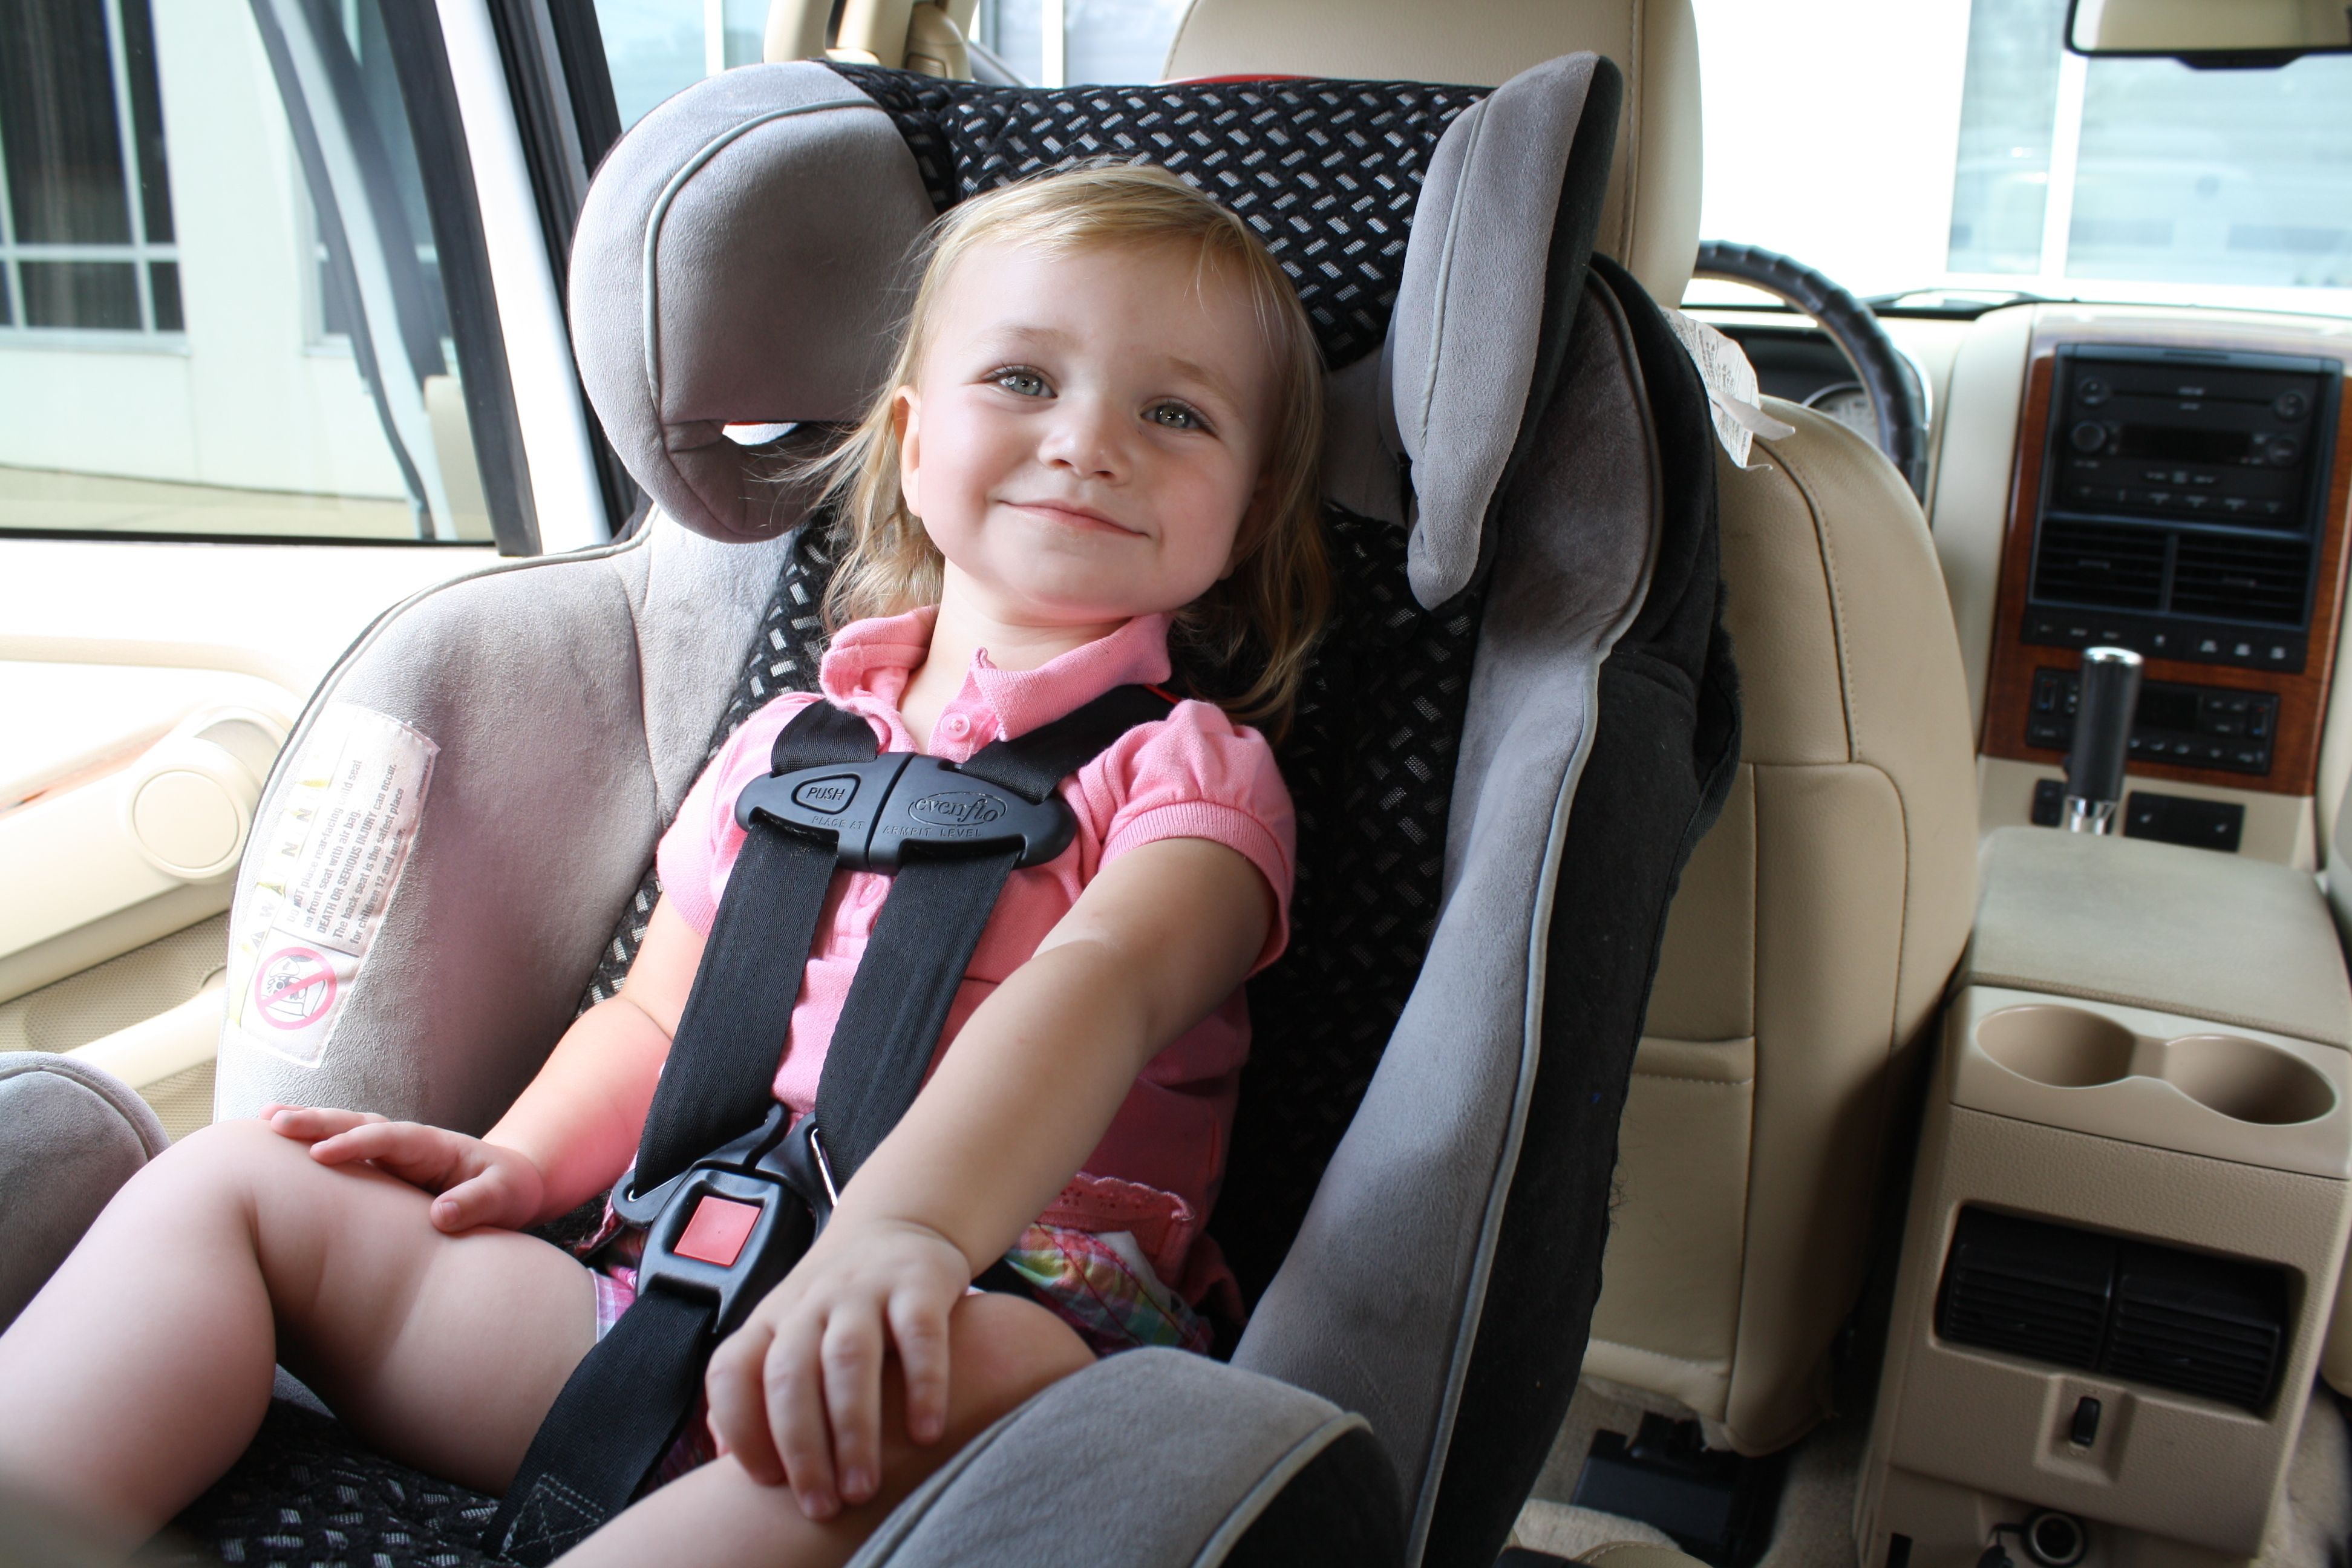 For How Long Child Can Be Sitting In Car Seat